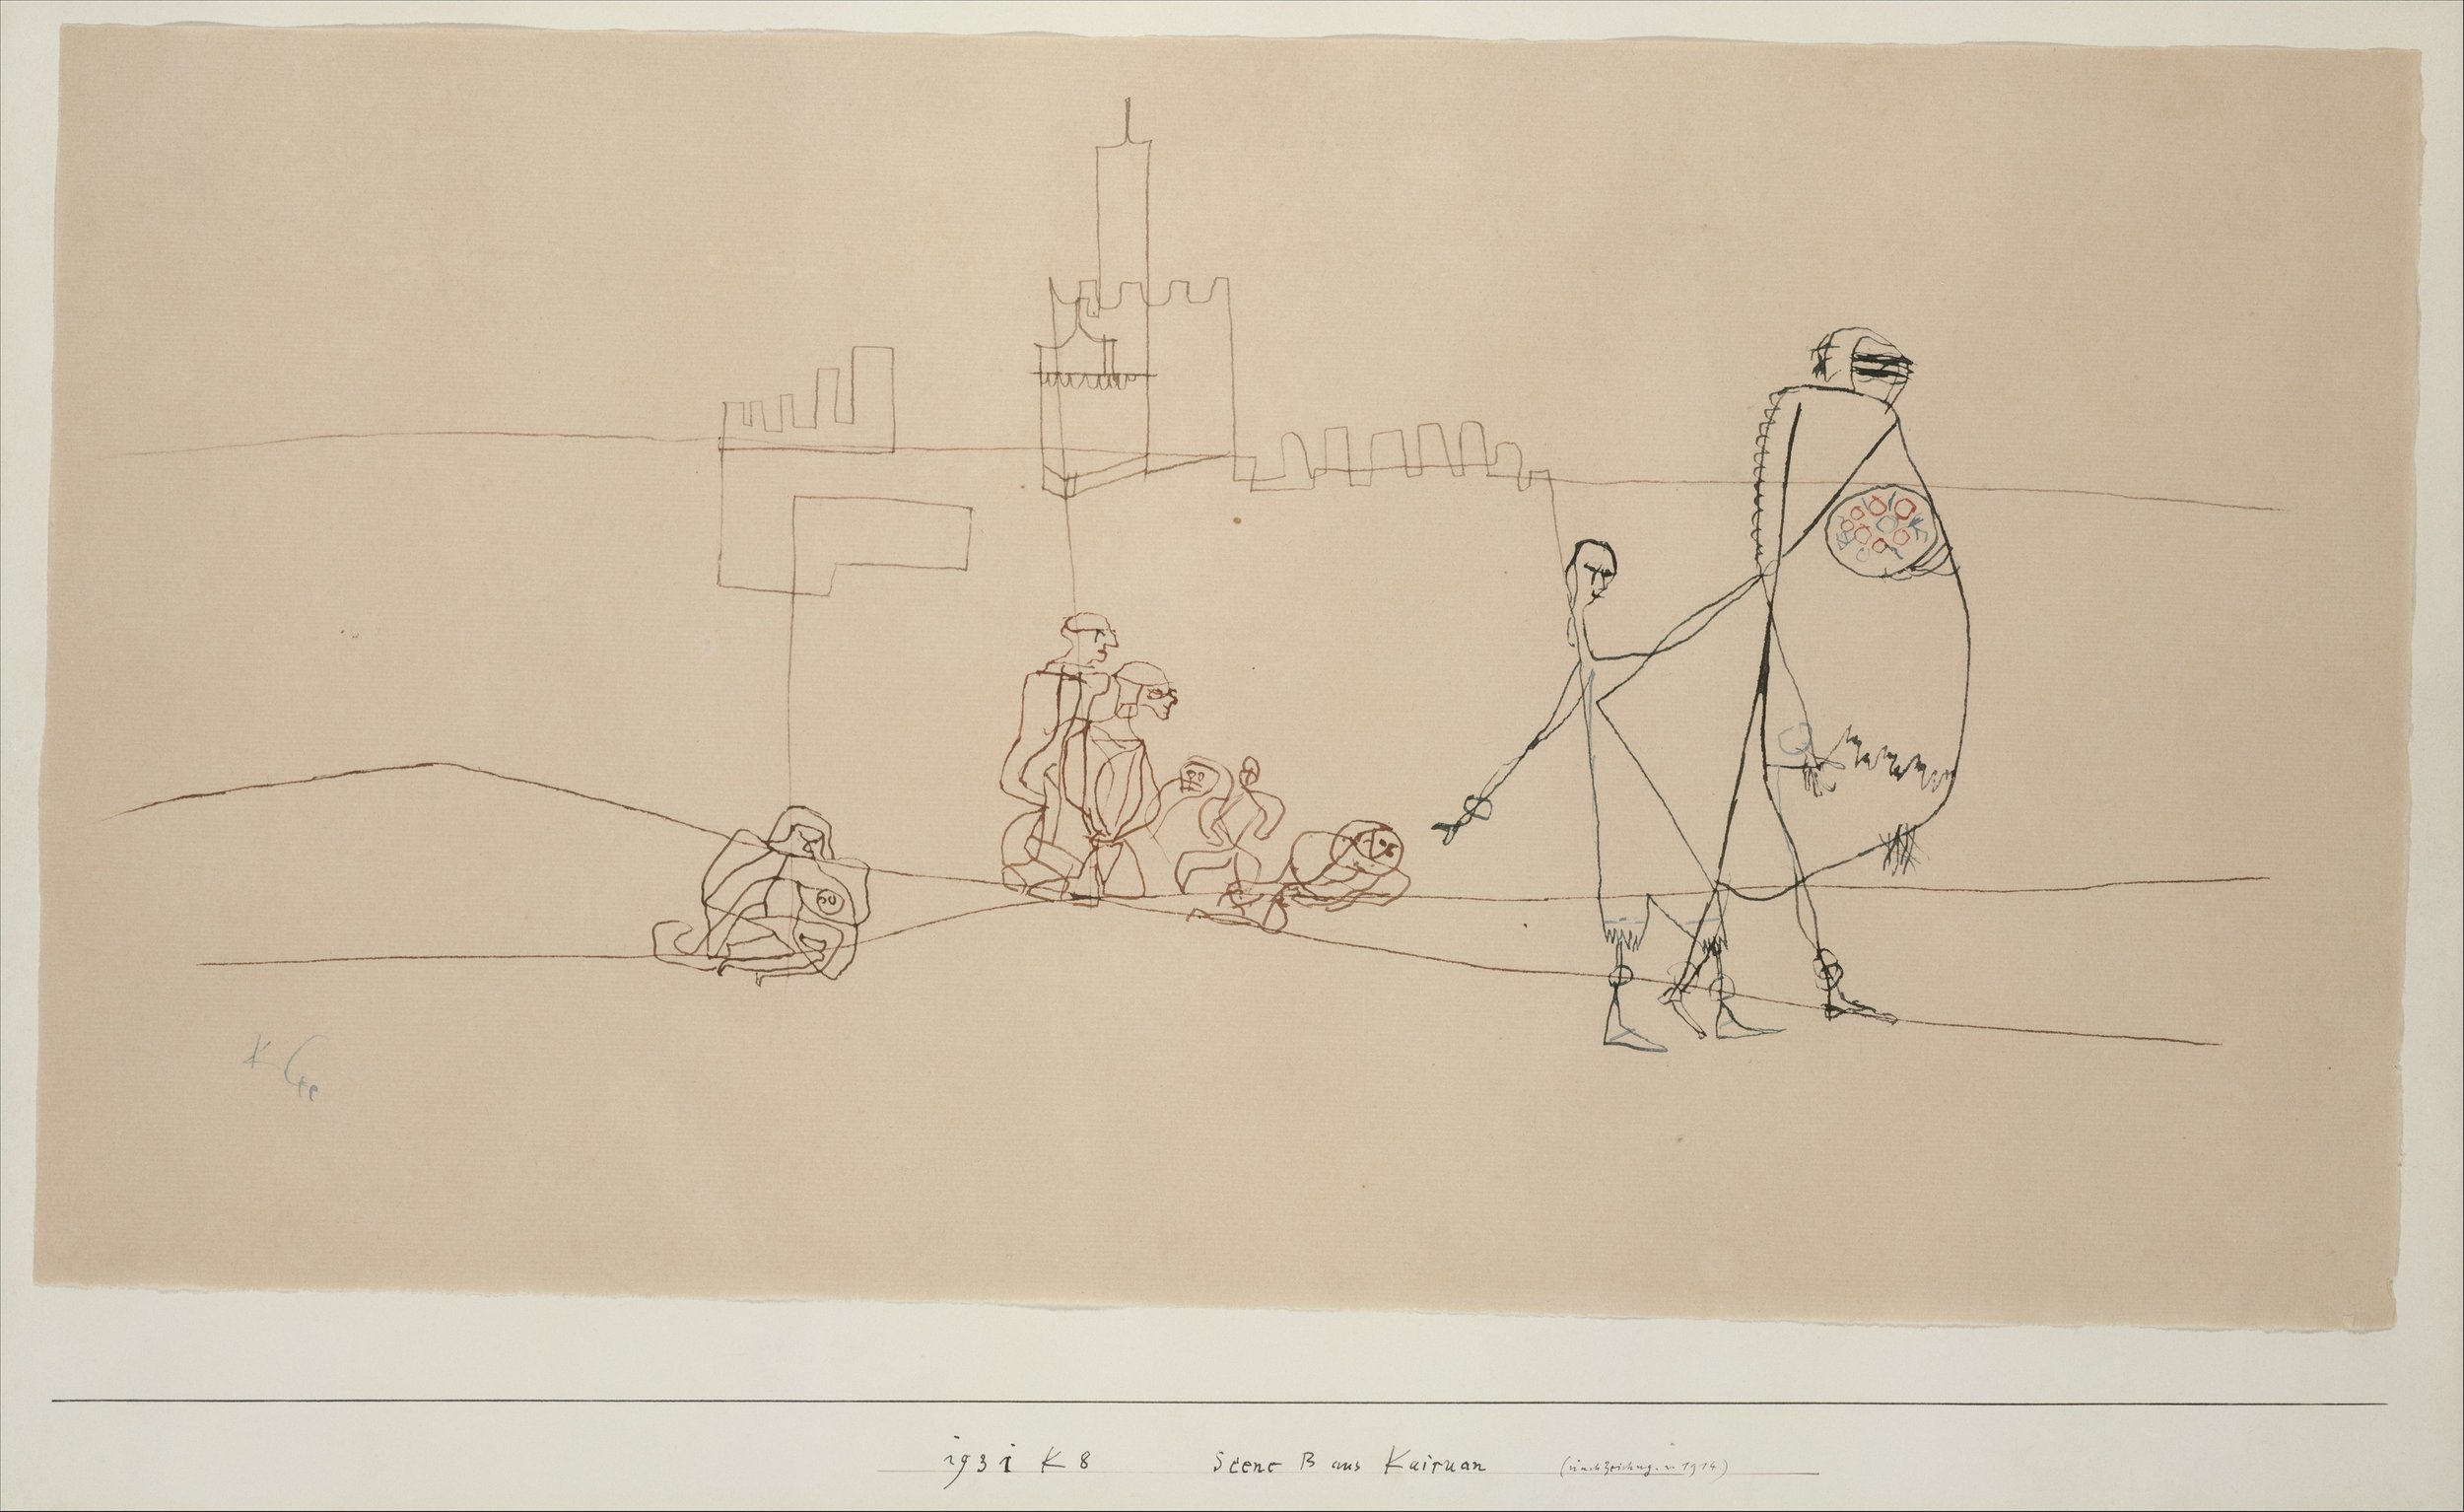 Paul Klee - Episode B at Kairouan - Ink on paper mounted on cardboard - 1931